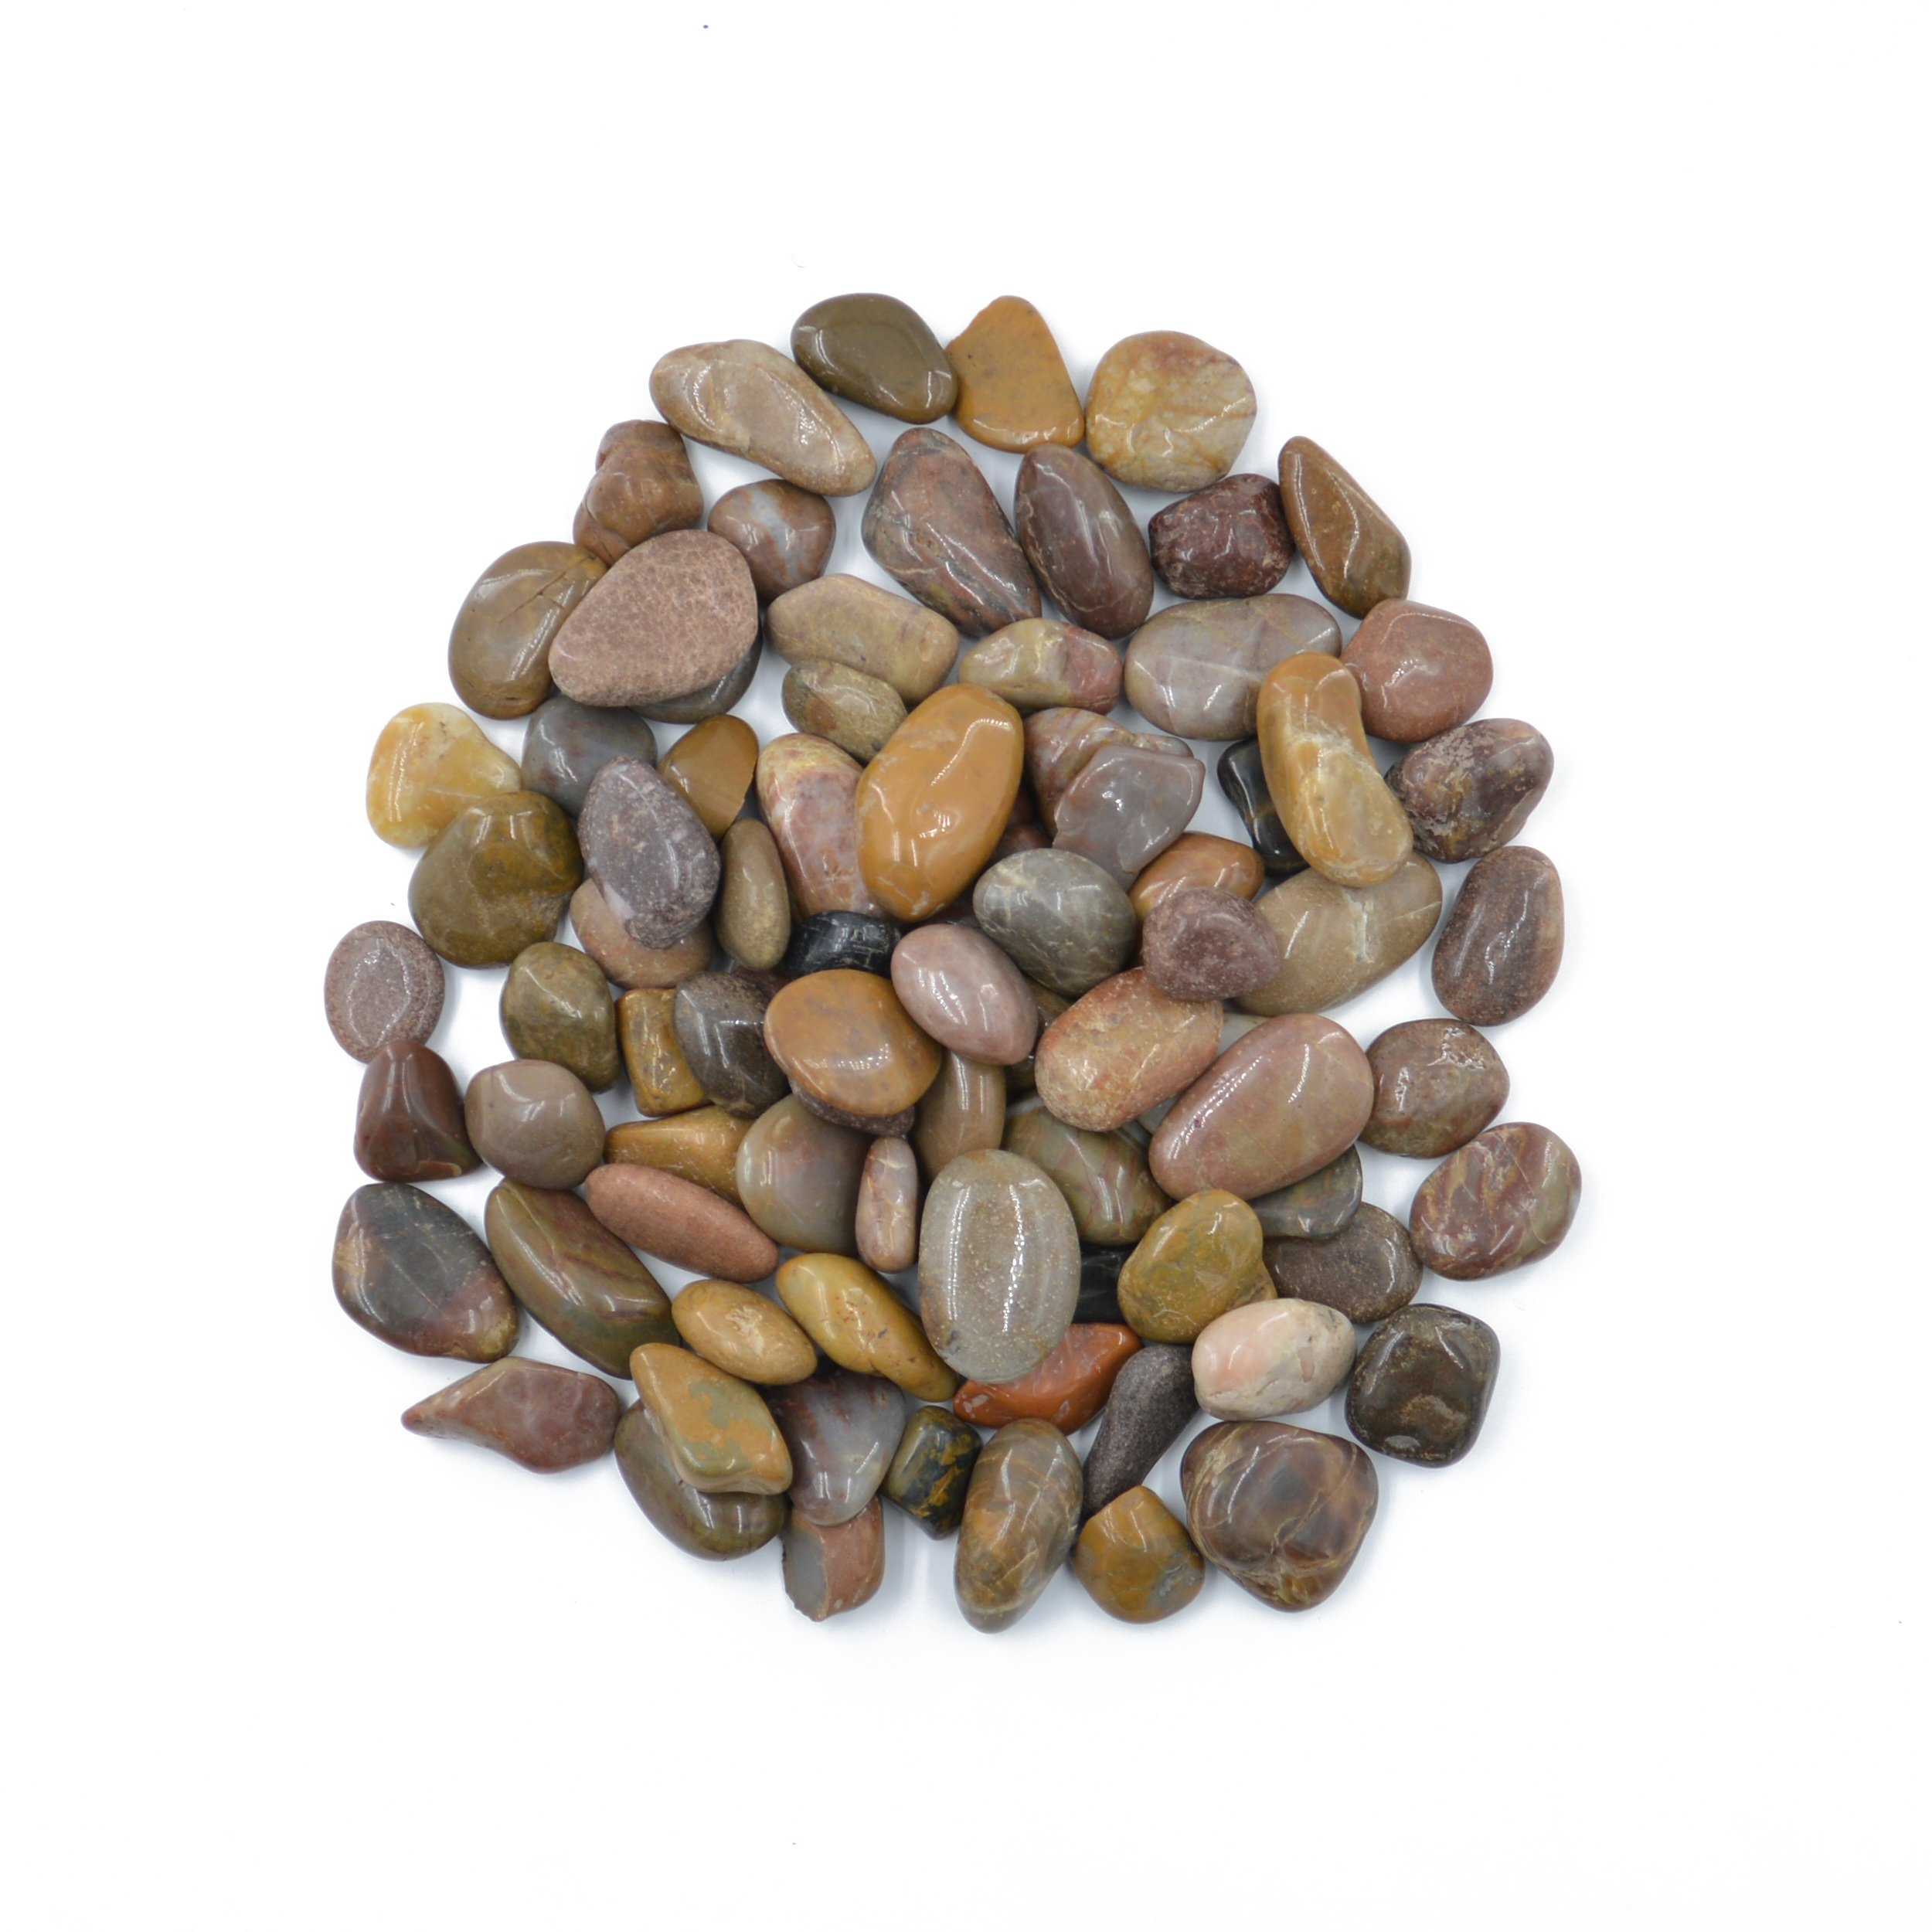 CNZ Polished Pebble Stone Red 5 Pounds 1.0-1.5inch for Plant Aquariums, Landscaping, Home Decor